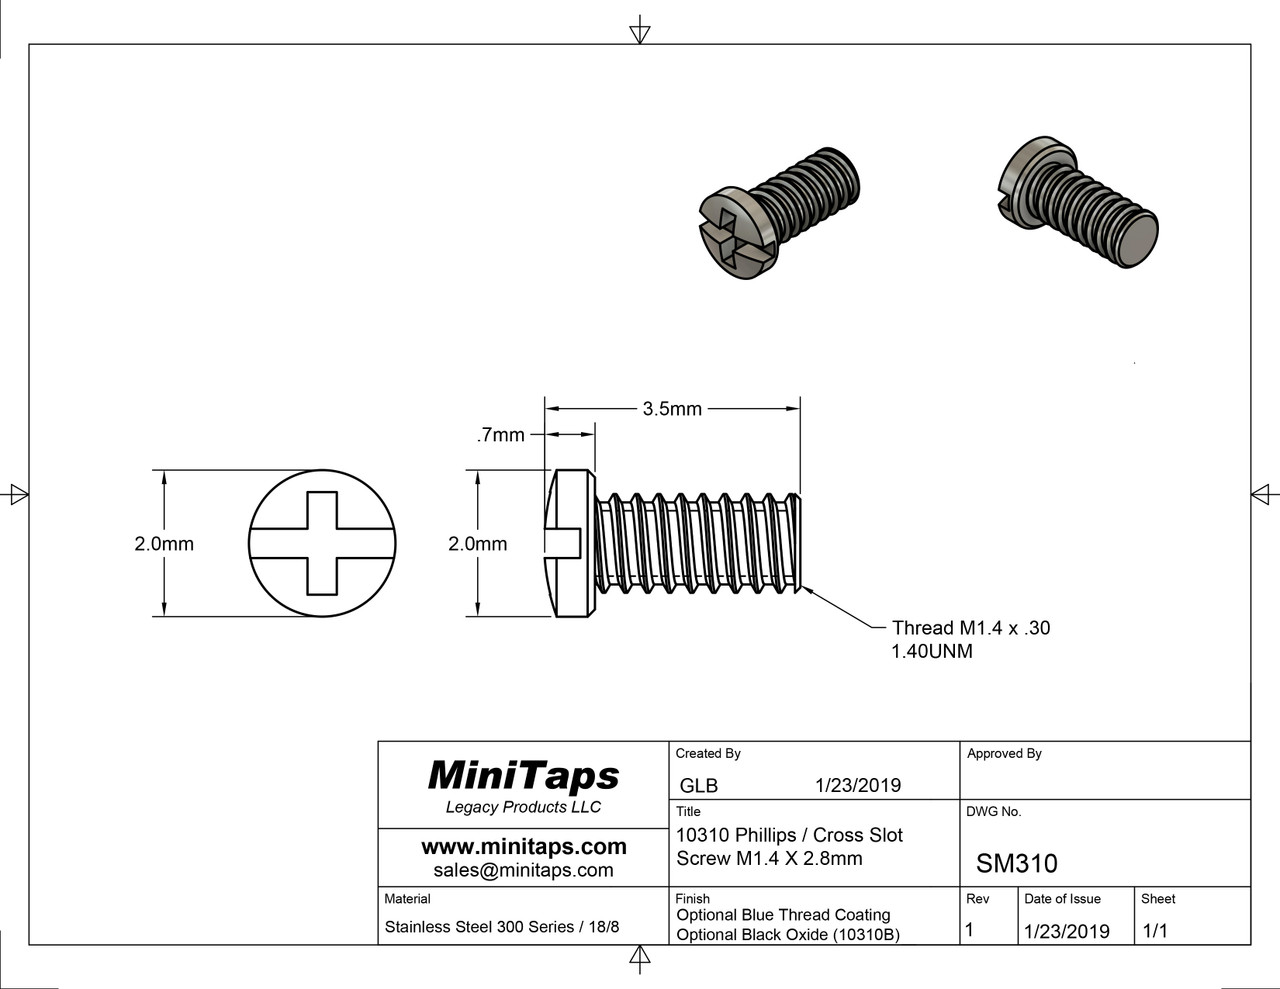 Thread M1.4 x Pitch .30mm Length 2.7mm Machine Screw Pan Head with Philips X-Slot Drive Overall Length 3.5mm Material Stainless Steel